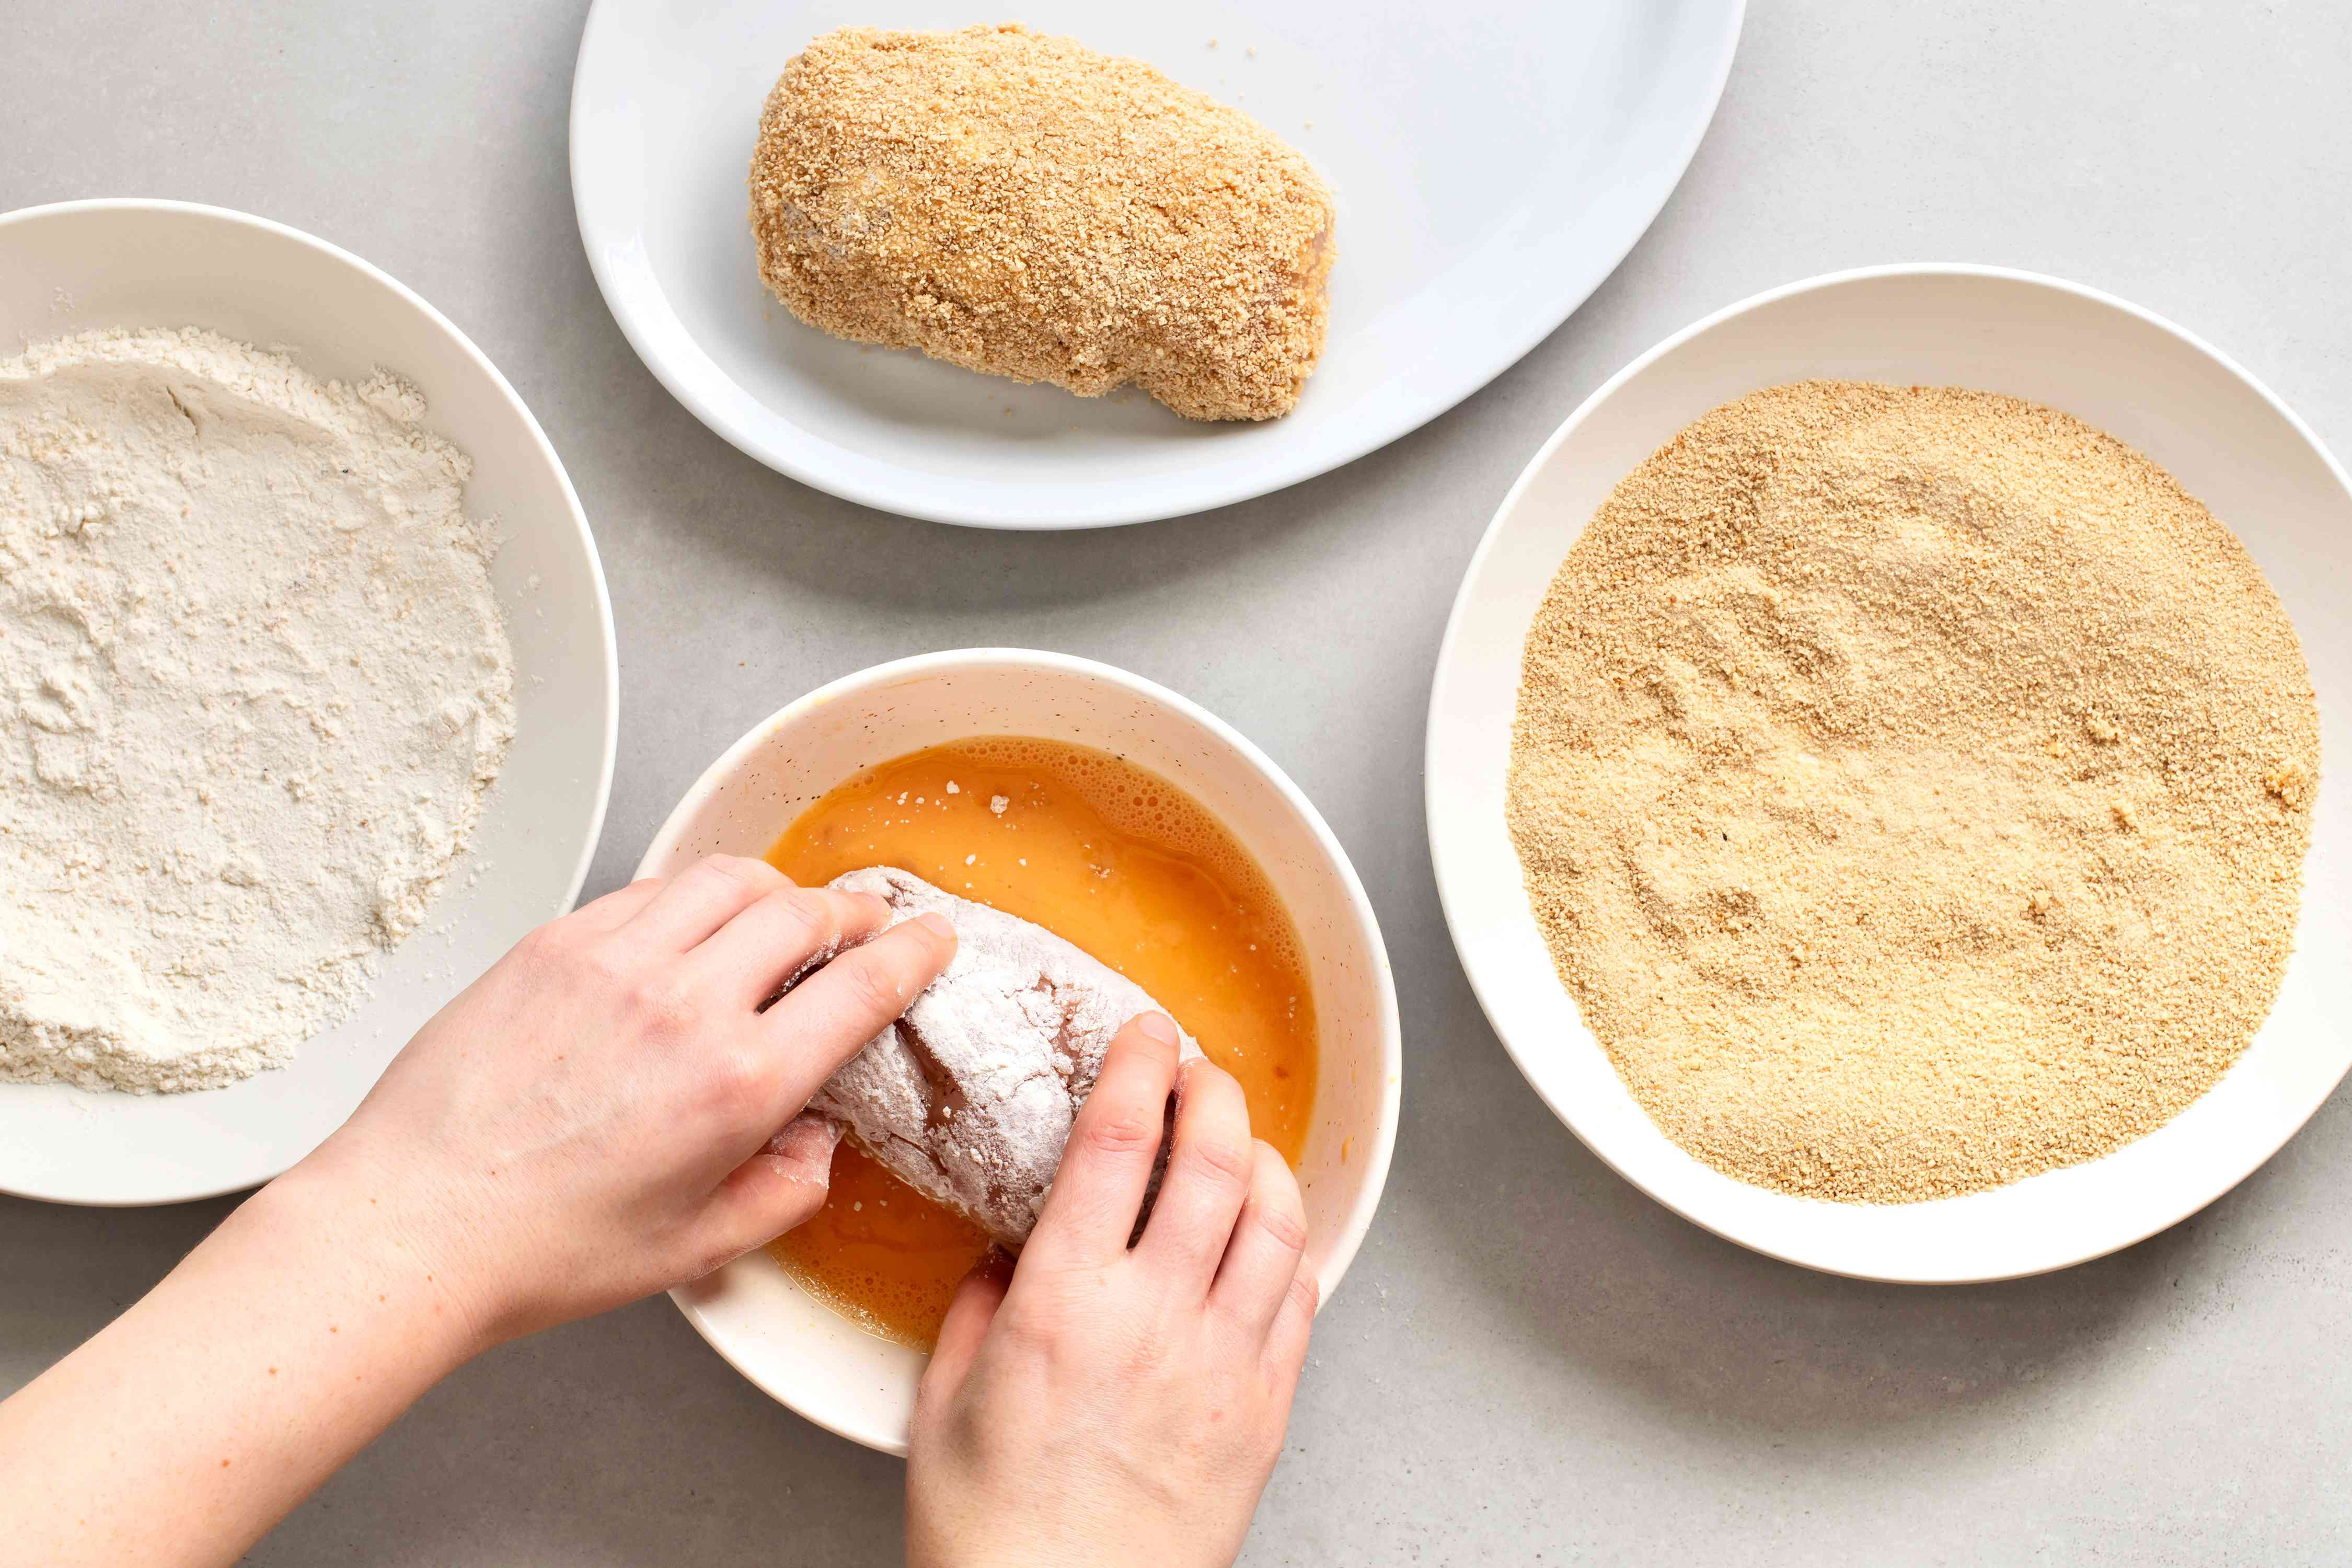 Dredge breasts in flour, then egg wash and then in breadcrumbs